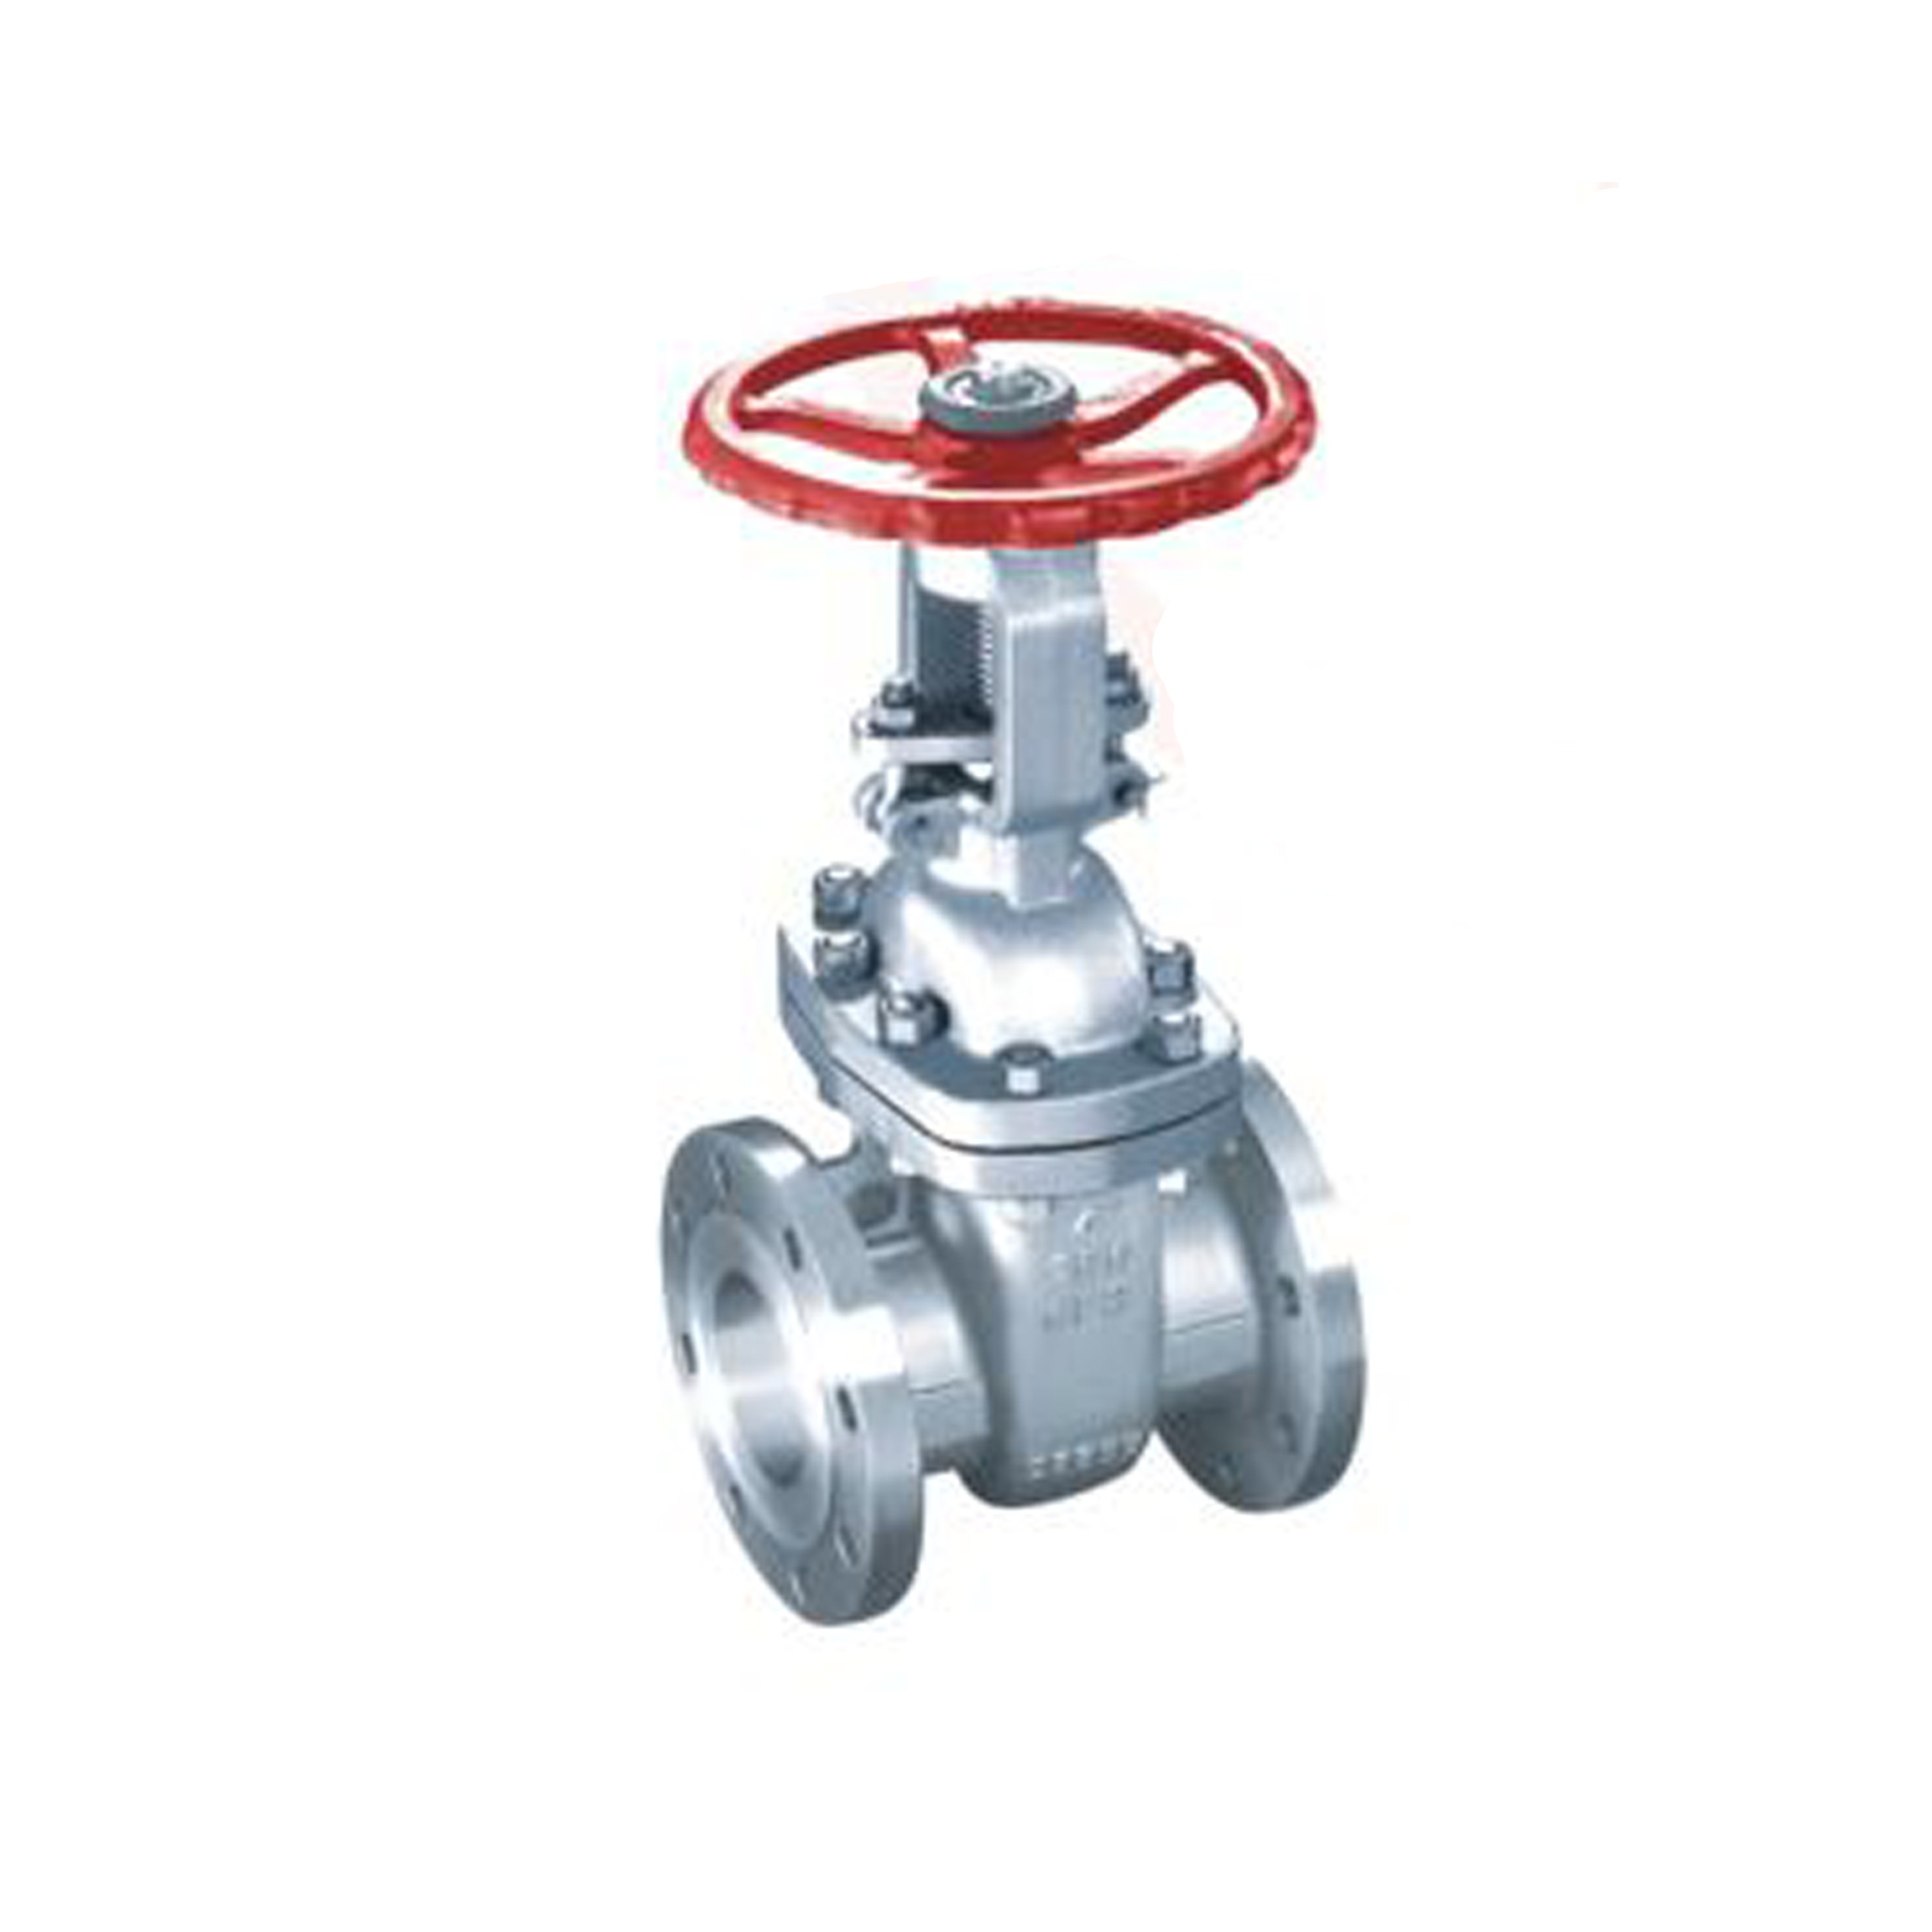 MZC Stainless Gate Valve (Flange End)